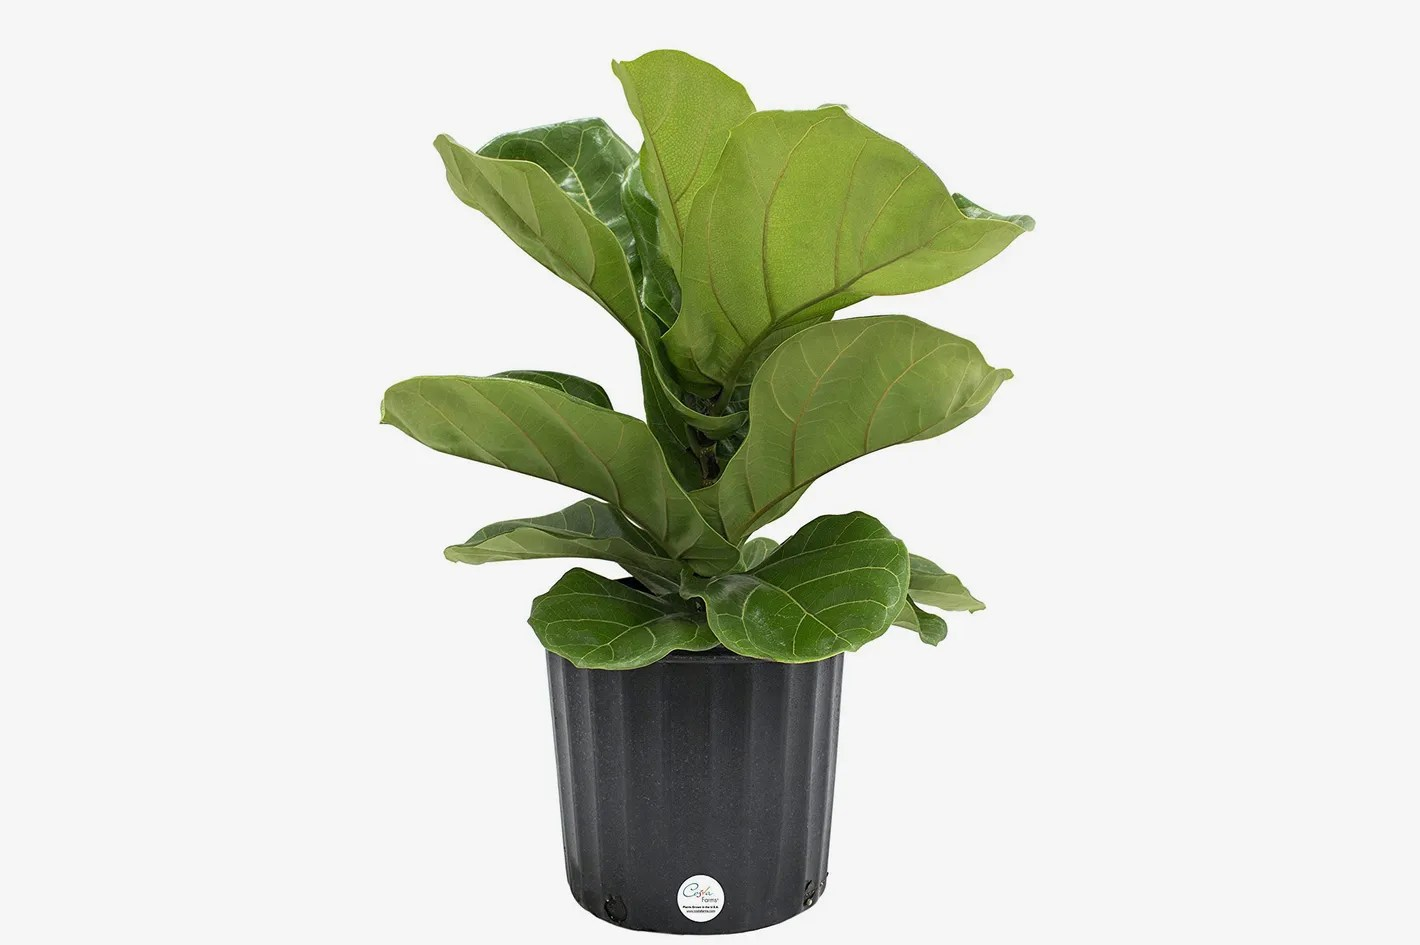 Where To Buy Indoor Plants Online Costa Farms Ficus Pandurata Fiddle Leaf Fig Live Indoor Floor Plant